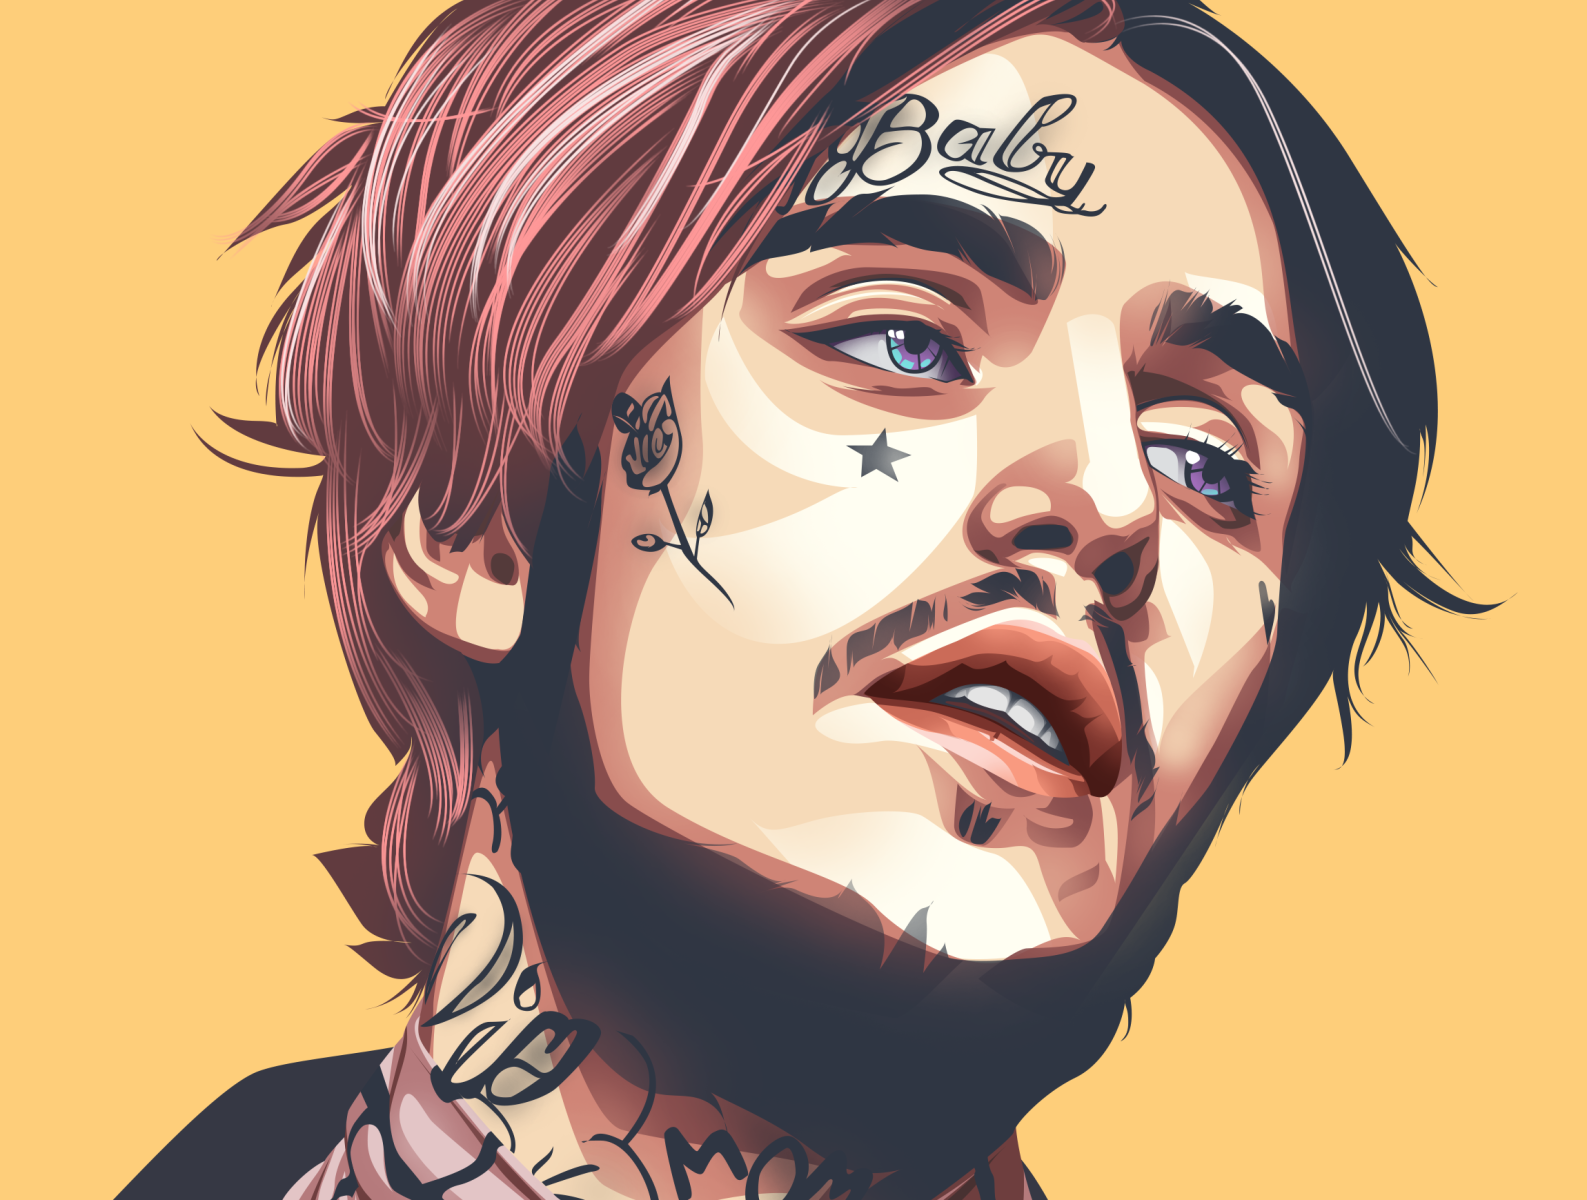 The Legend of lil peep by Awal Hasan on Dribbble